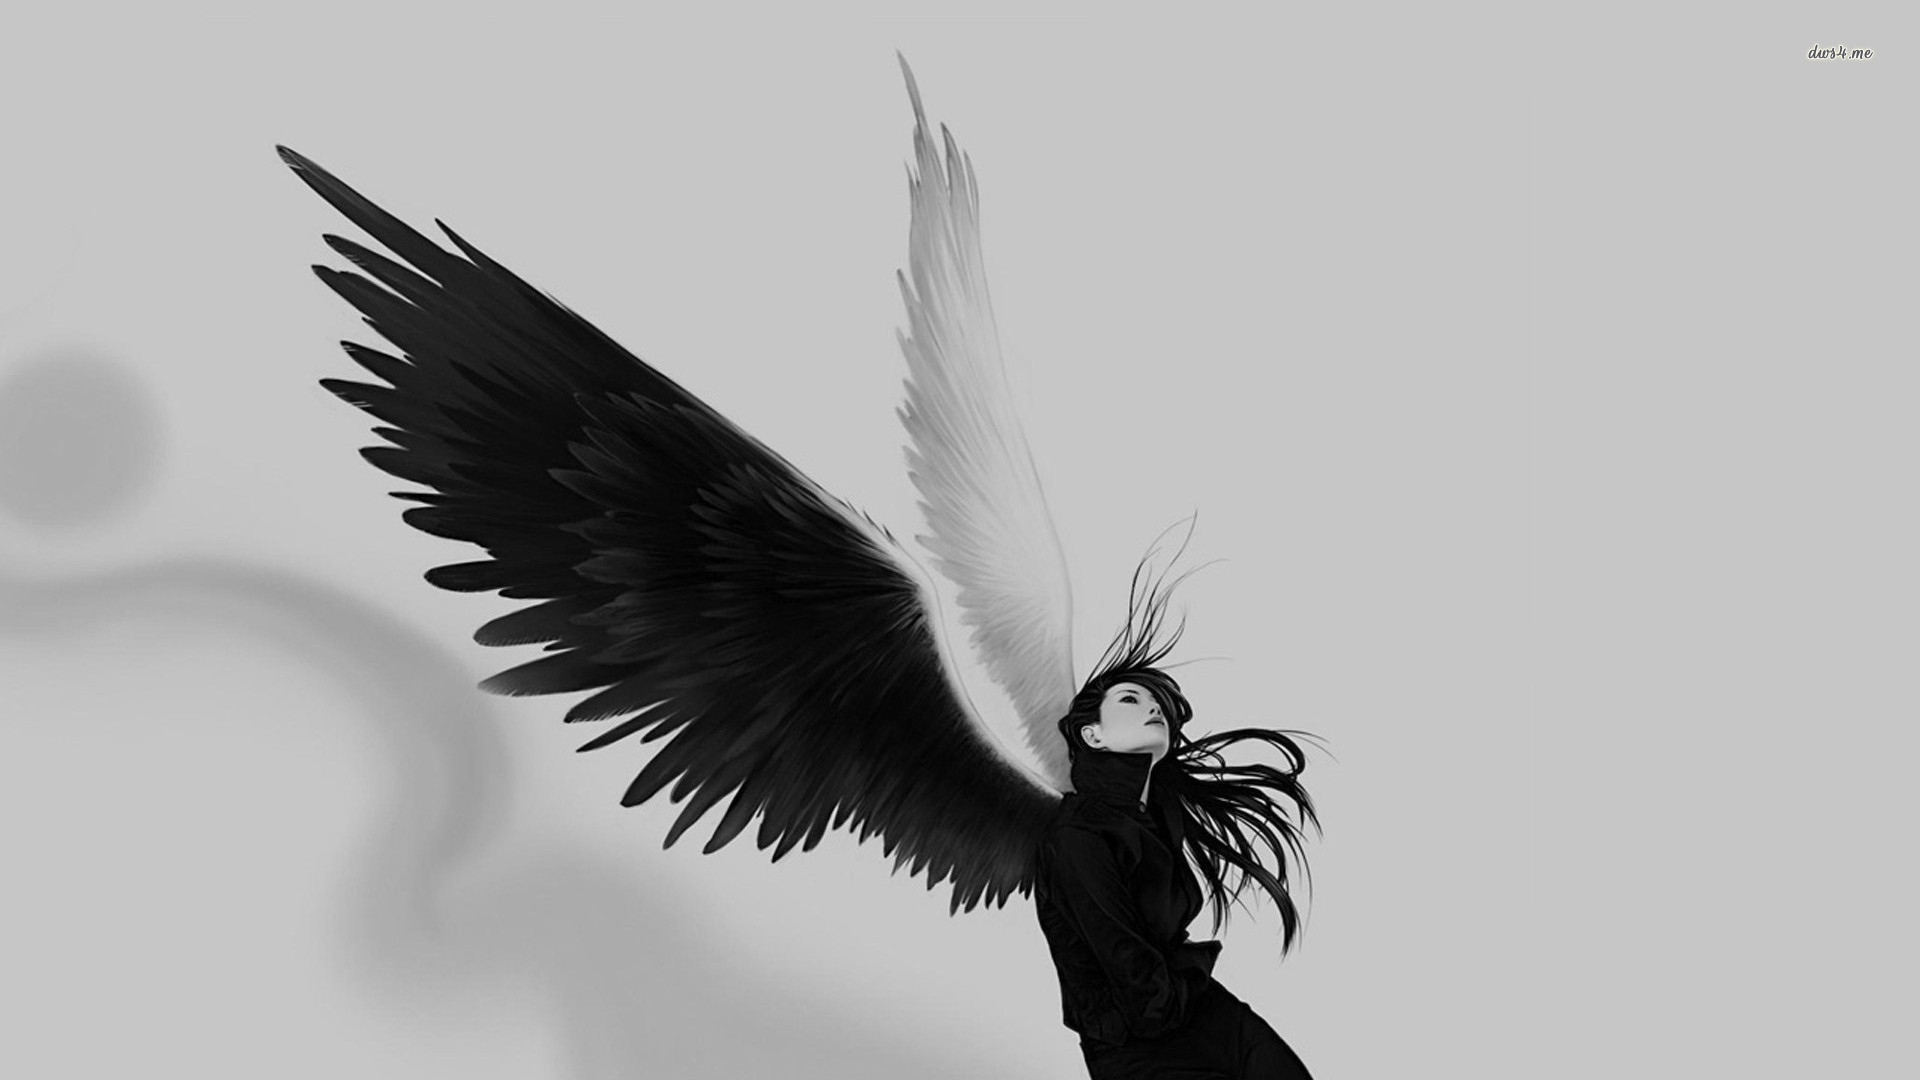 1920x1080 Black angel Artistic HD desktop wallpaper, Wing wallpaper, Woman wallpaper, Angel  wallpaper - Artistic no.